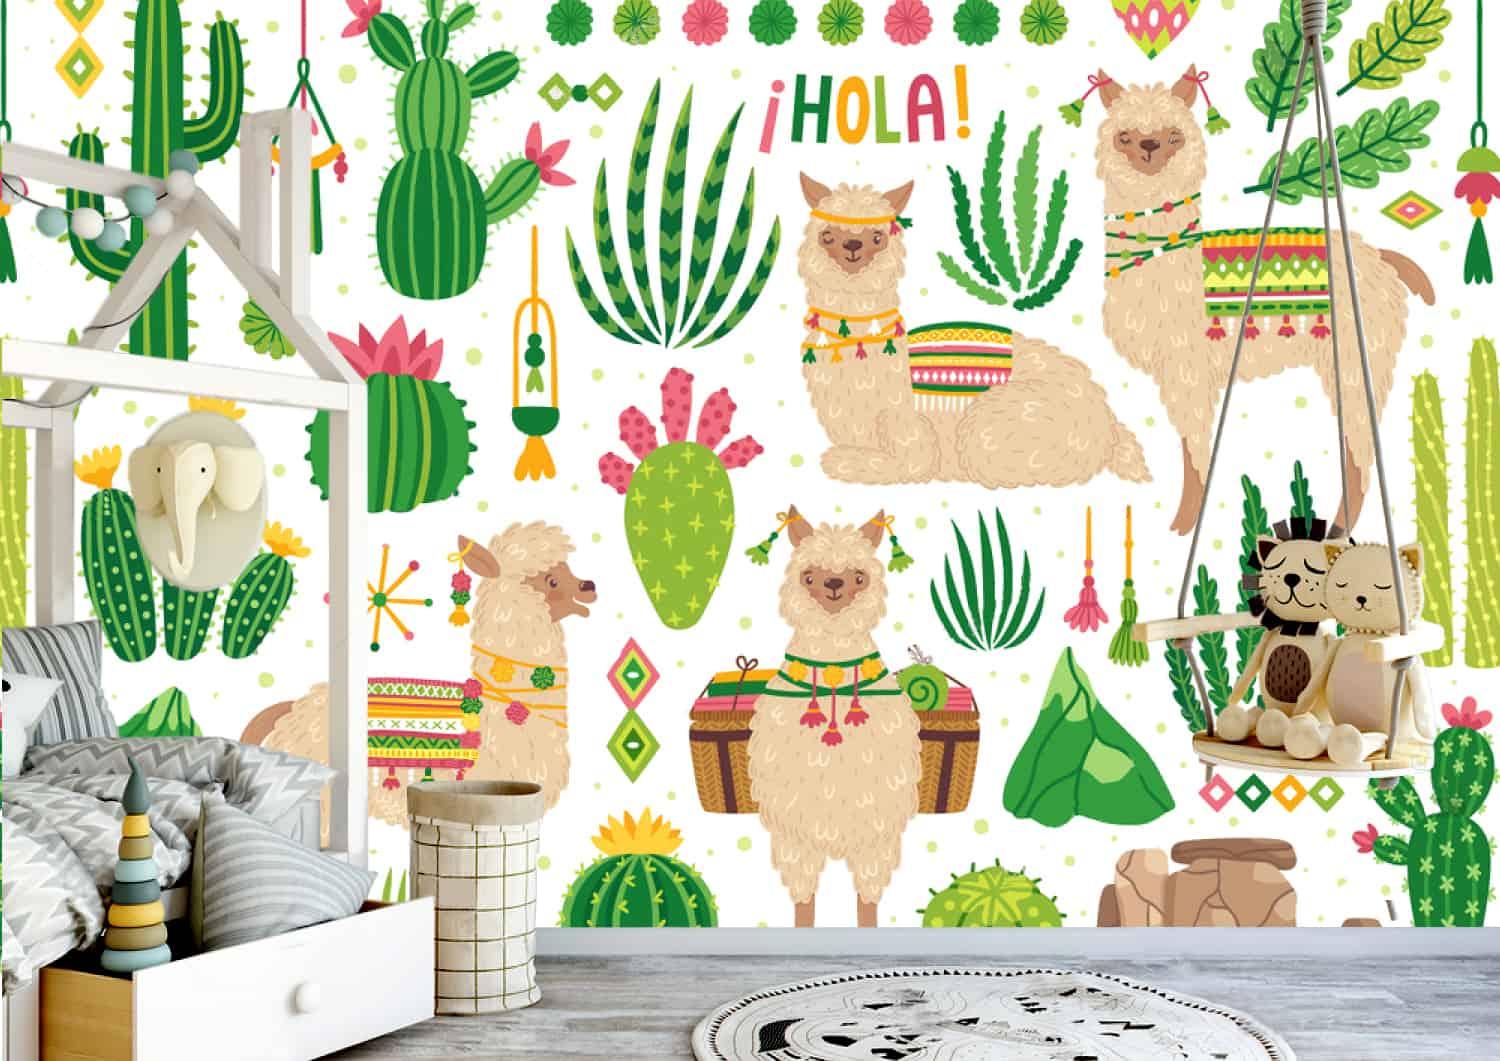 Décoration Murale Adhésive Lama With Cactus Cactus And Flowers Mexico Colorful Nursery Wallpaper Art Beautiful Decor Large Photo Wall Mural Adhesive Vinyl